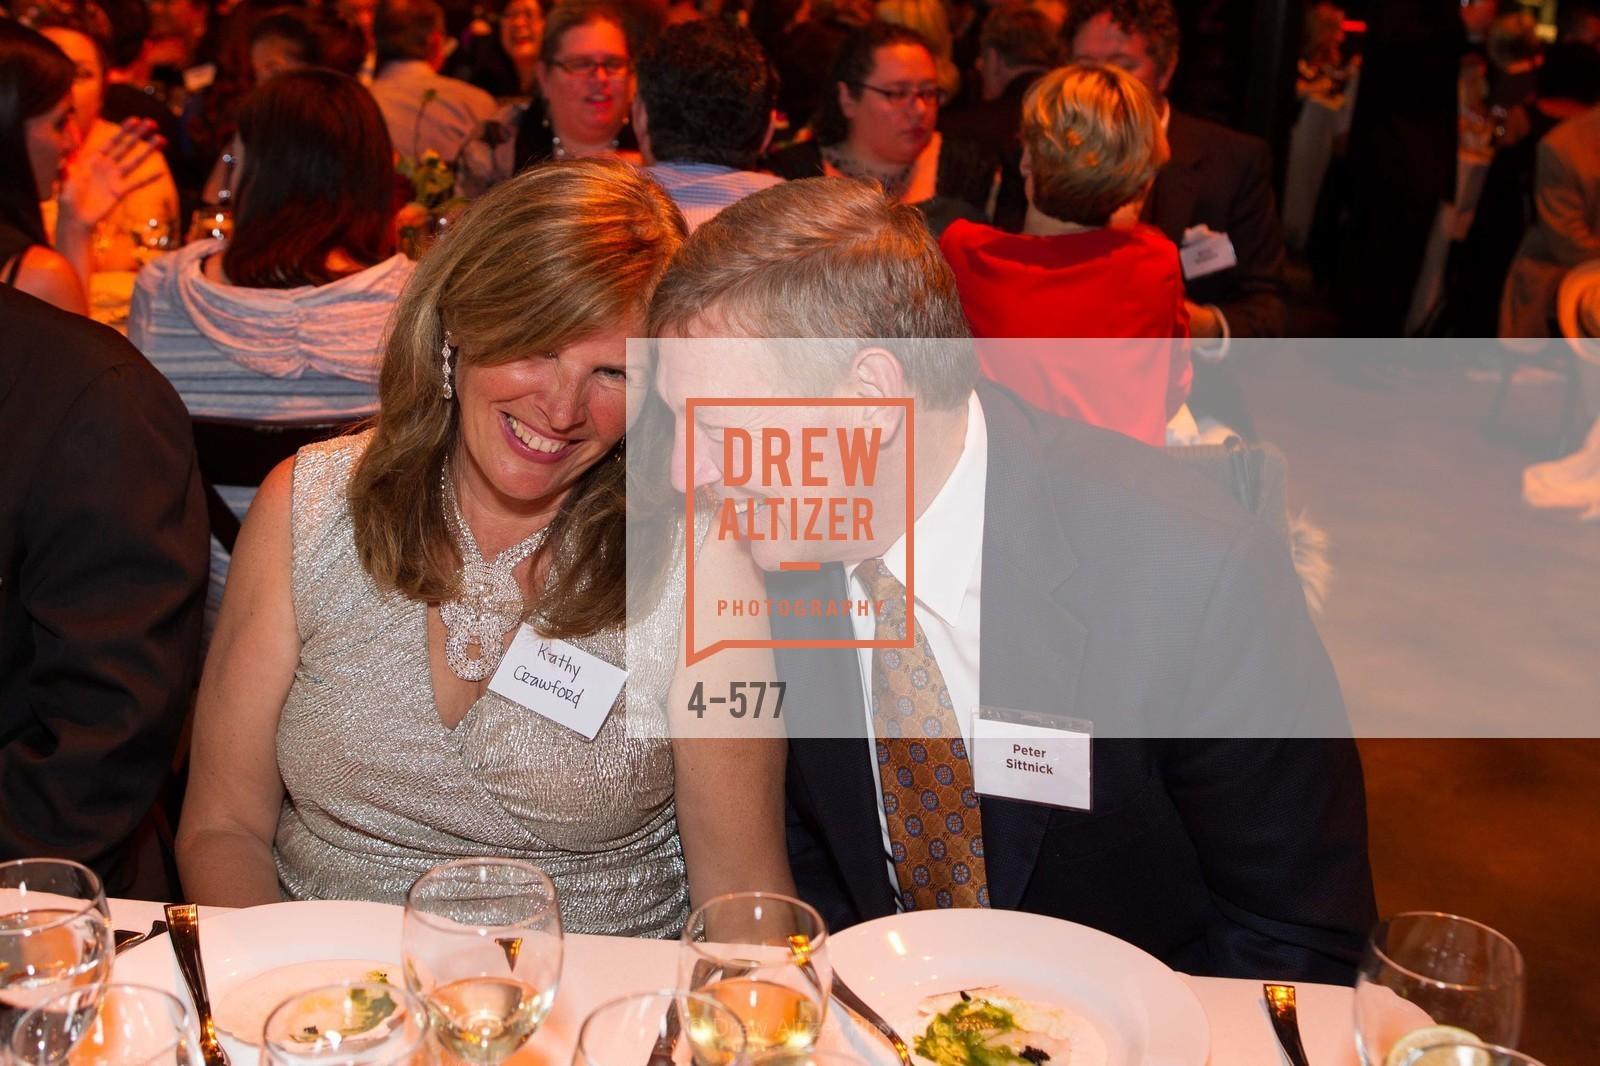 Kathy Crawford, Peter Sittnick, SF-MARIN FOOD BANK One Big Table Gala, US, September 27th, 2014,Drew Altizer, Drew Altizer Photography, full-service agency, private events, San Francisco photographer, photographer california